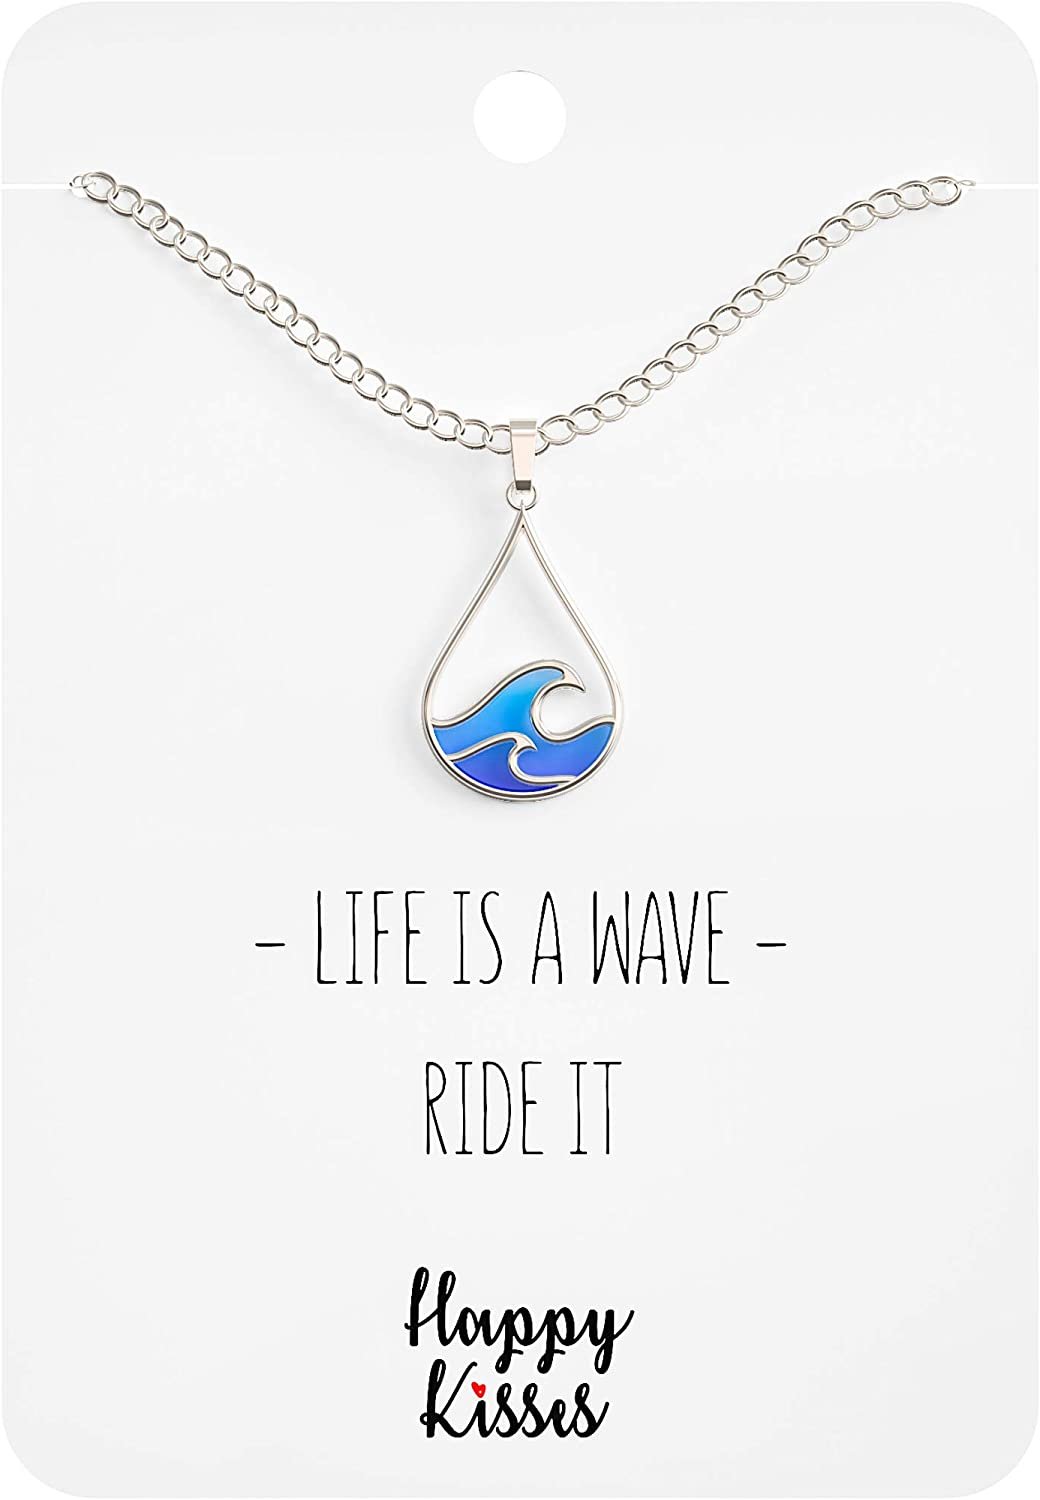 Ocean Wave Necklace – Cute Drop Shape Pendant for Surfer, Sea Lover, Hawaiian or Beach Enthusiast - Blue Wave Jewelry is a Great Gift for any Woman